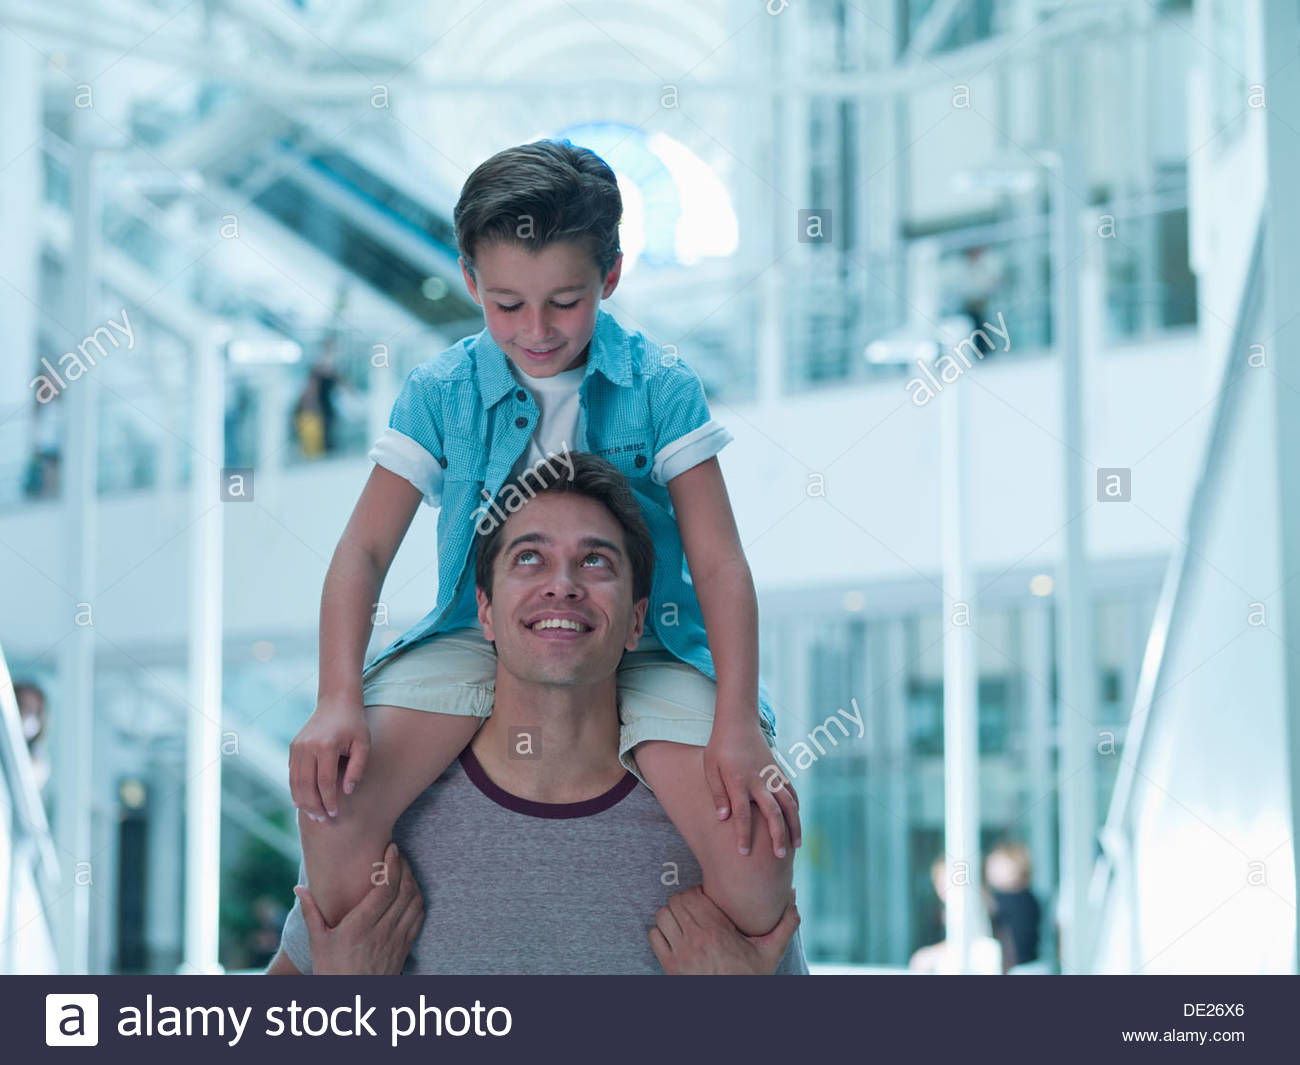 Father carrying son on shoulders in mall Photo Stock